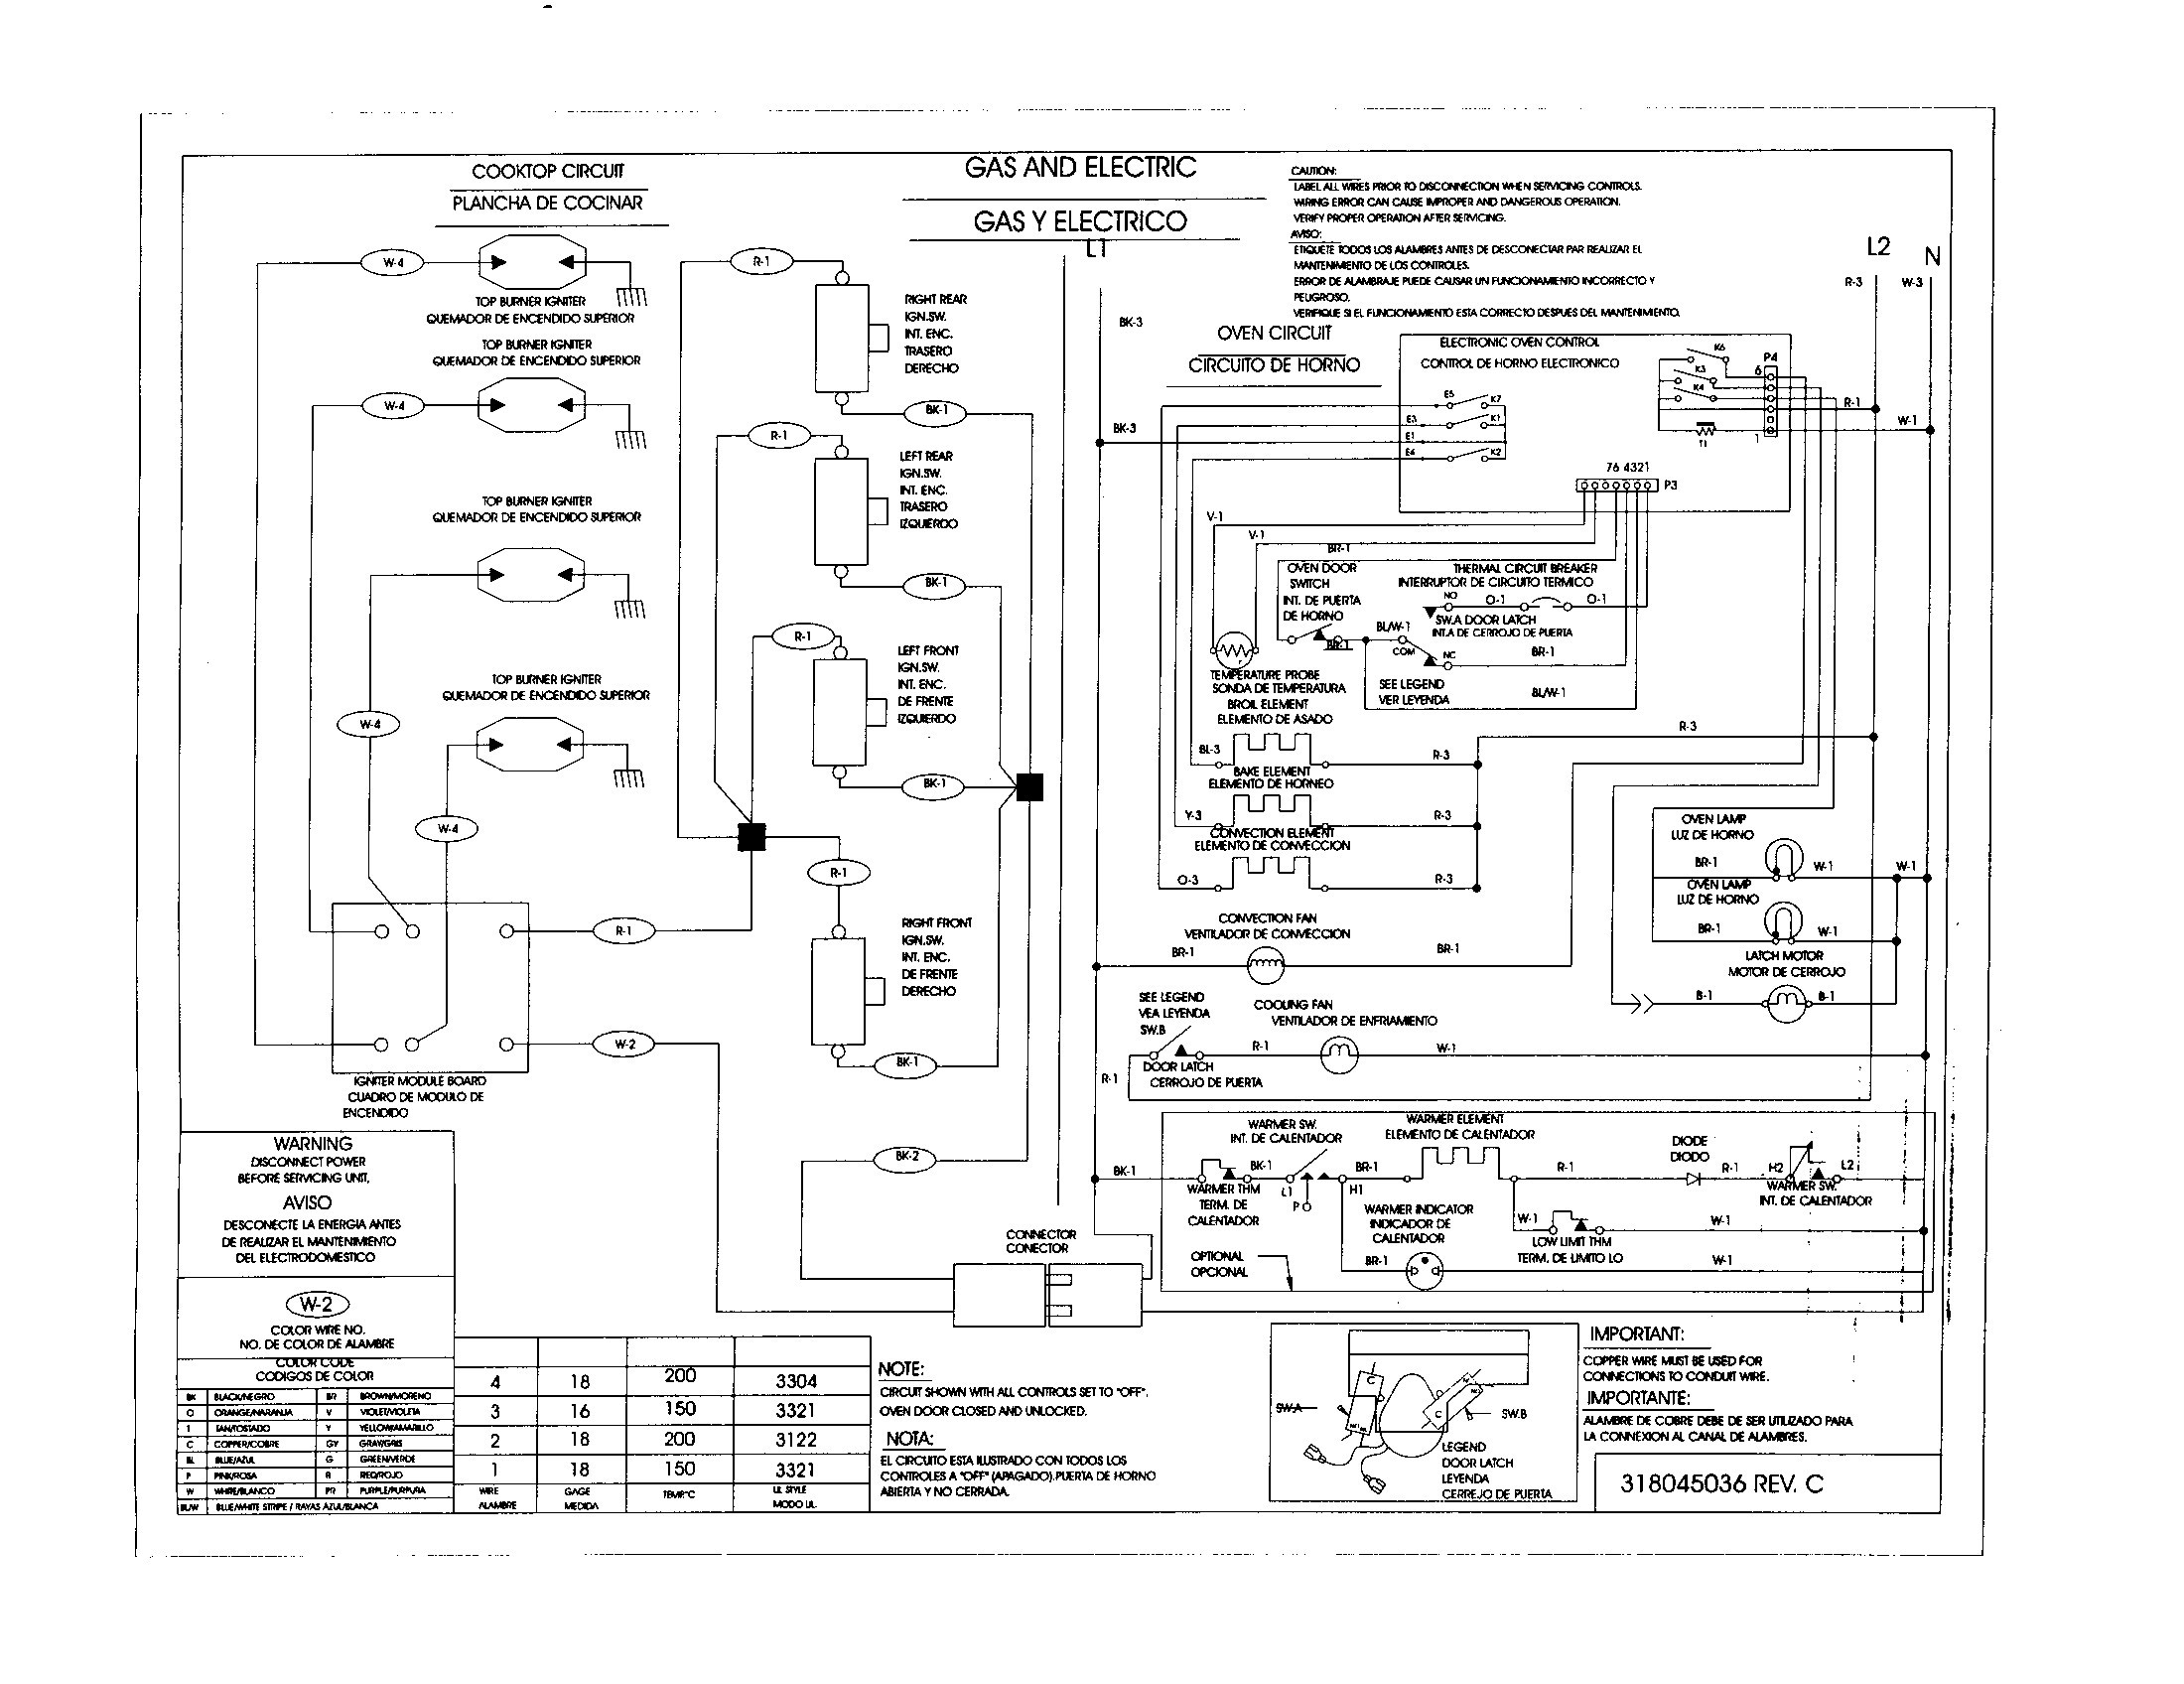 whirlpool dishwasher wiring diagram Download-Dishwasher Wiring Diagram New Colorful Kenmore Elite Dryer Wiring Diagram Simple Wiring 4-q